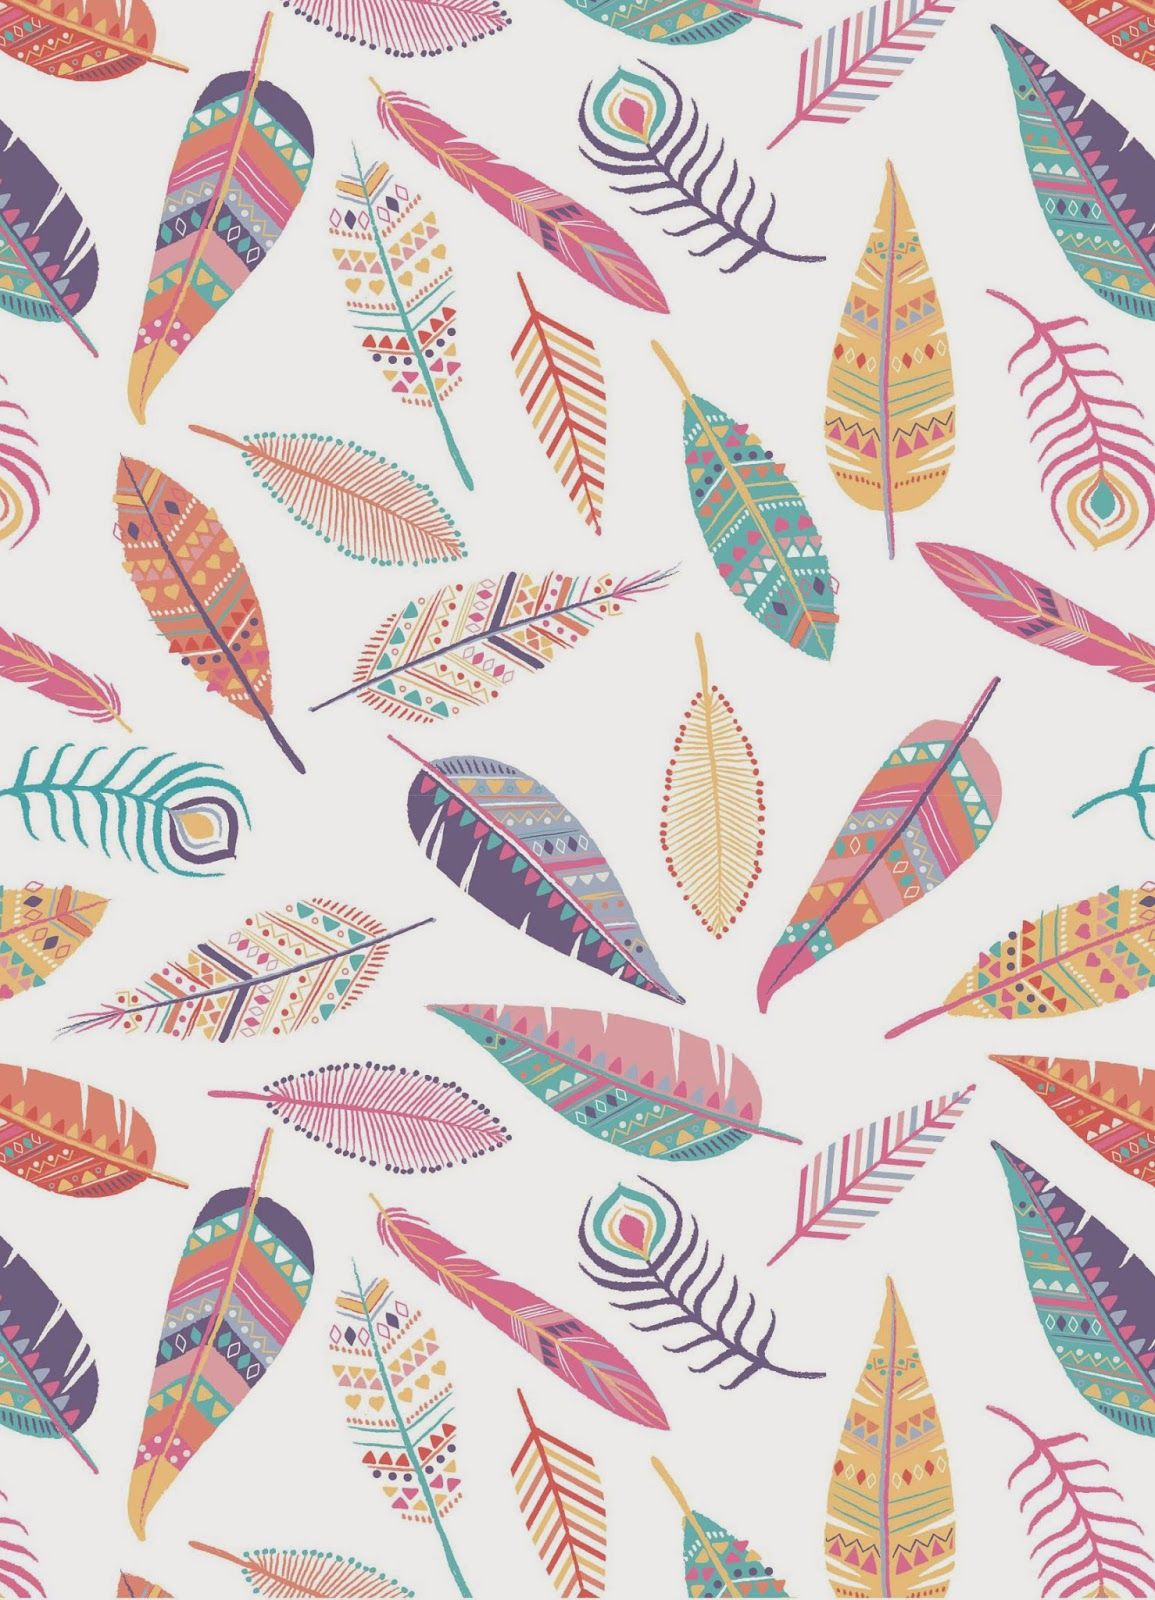 Emily kiddy print and pattern pattern pinterest for Paper design wallpaper